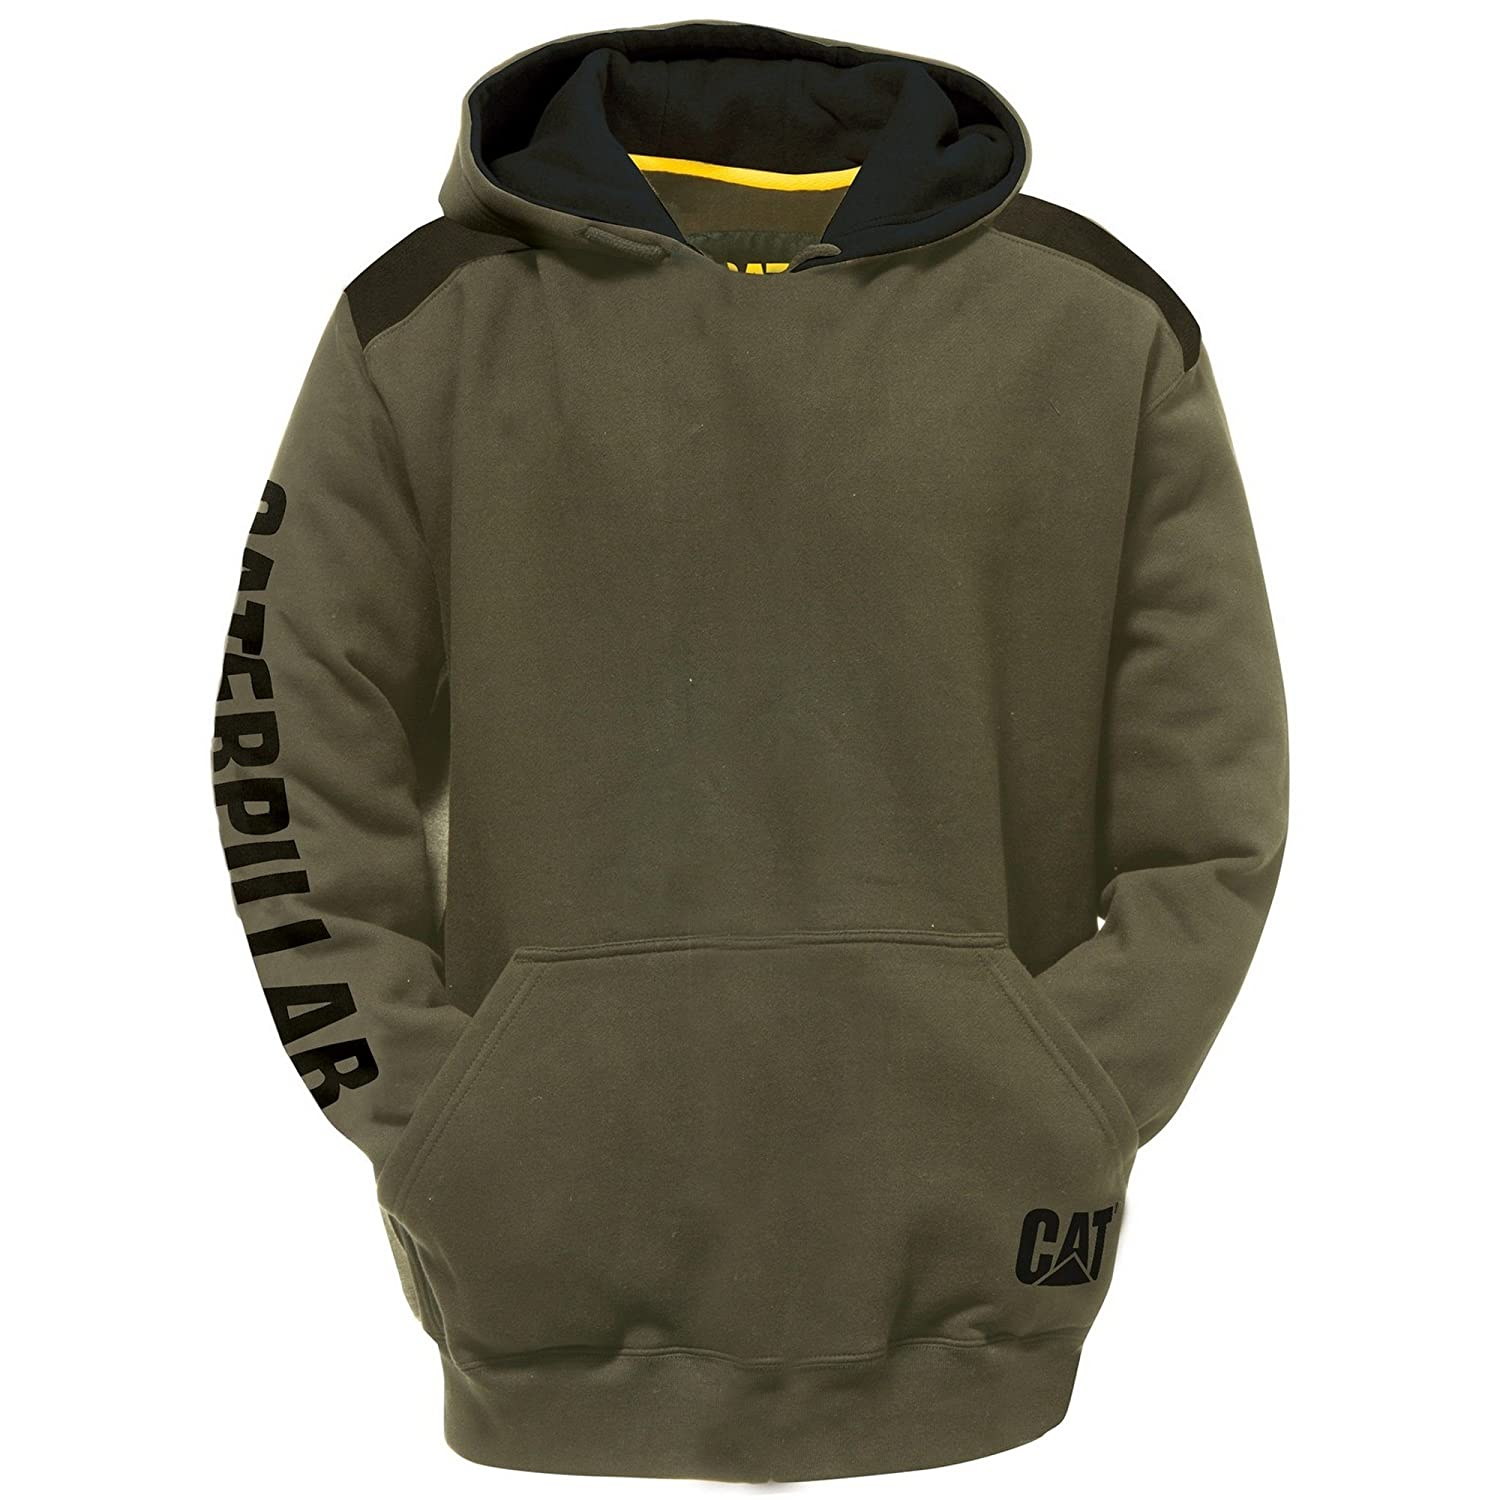 Army Moss 3XL - Chest 54 - 57\ Caterpillar C1910802 - Sweatshirt à capuche et logo - Homme